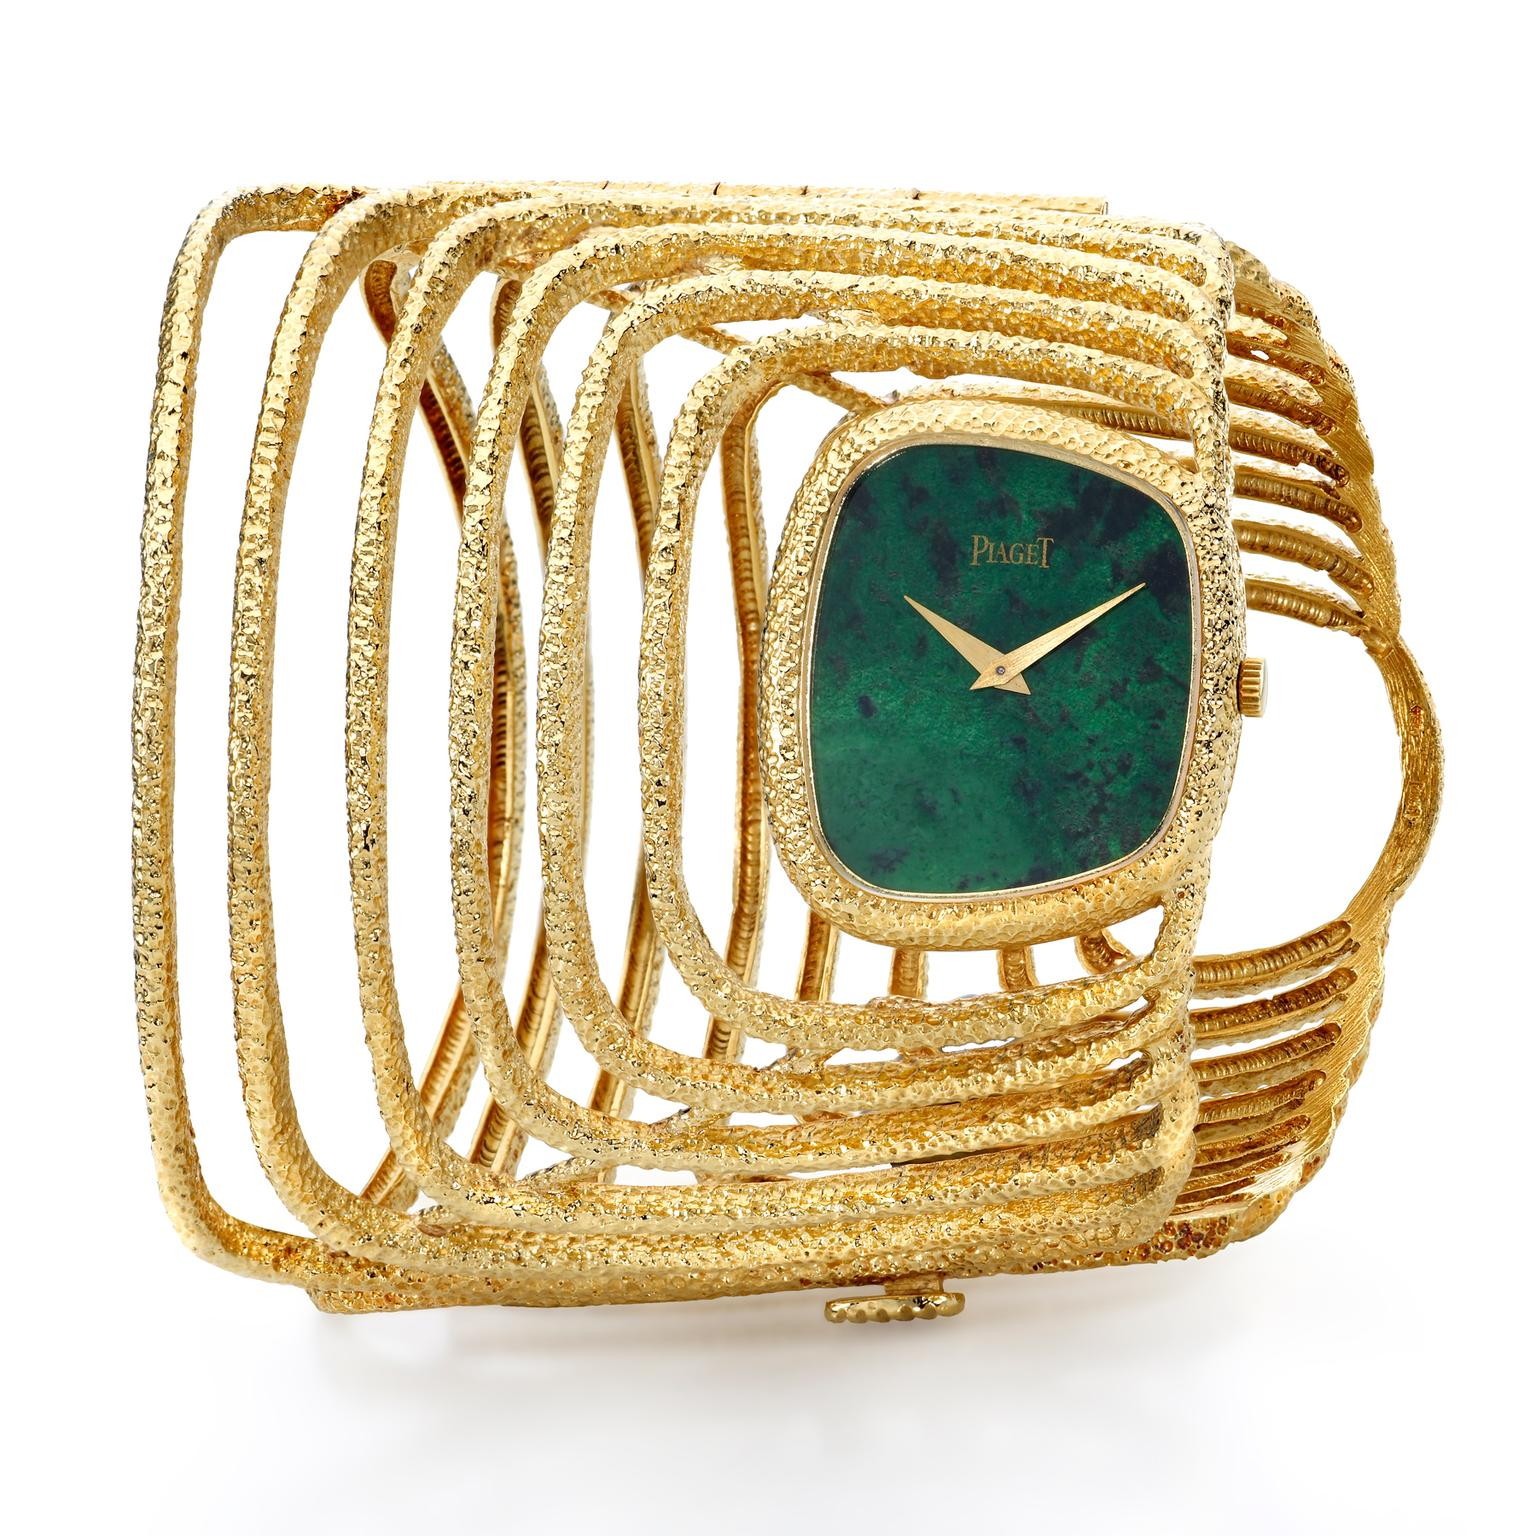 Piaget yellow gold cuff watch with malachite dial 1970